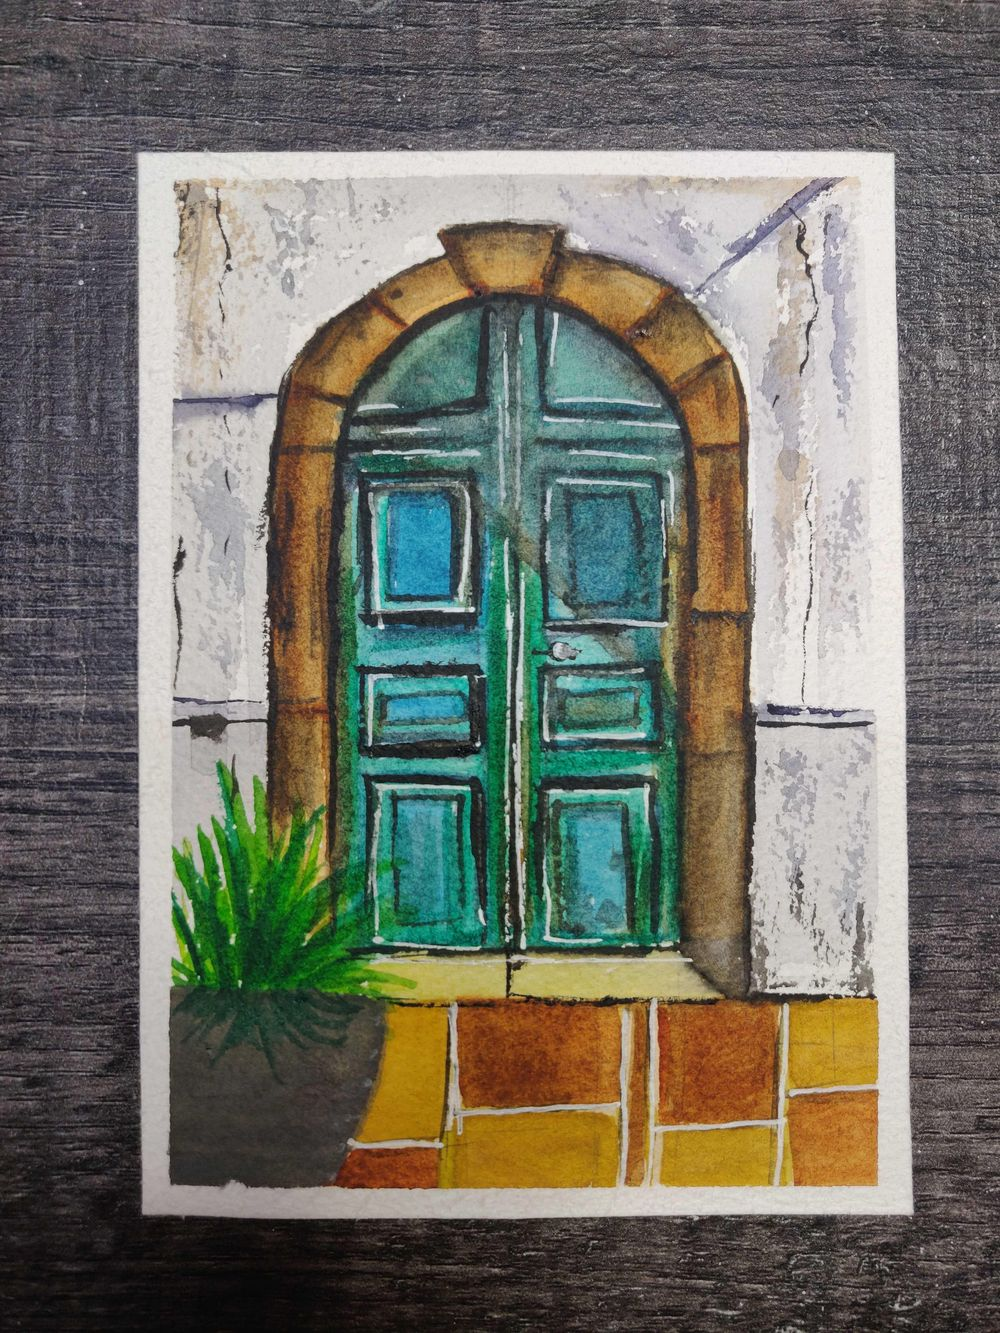 Old Rustic Doors - image 3 - student project